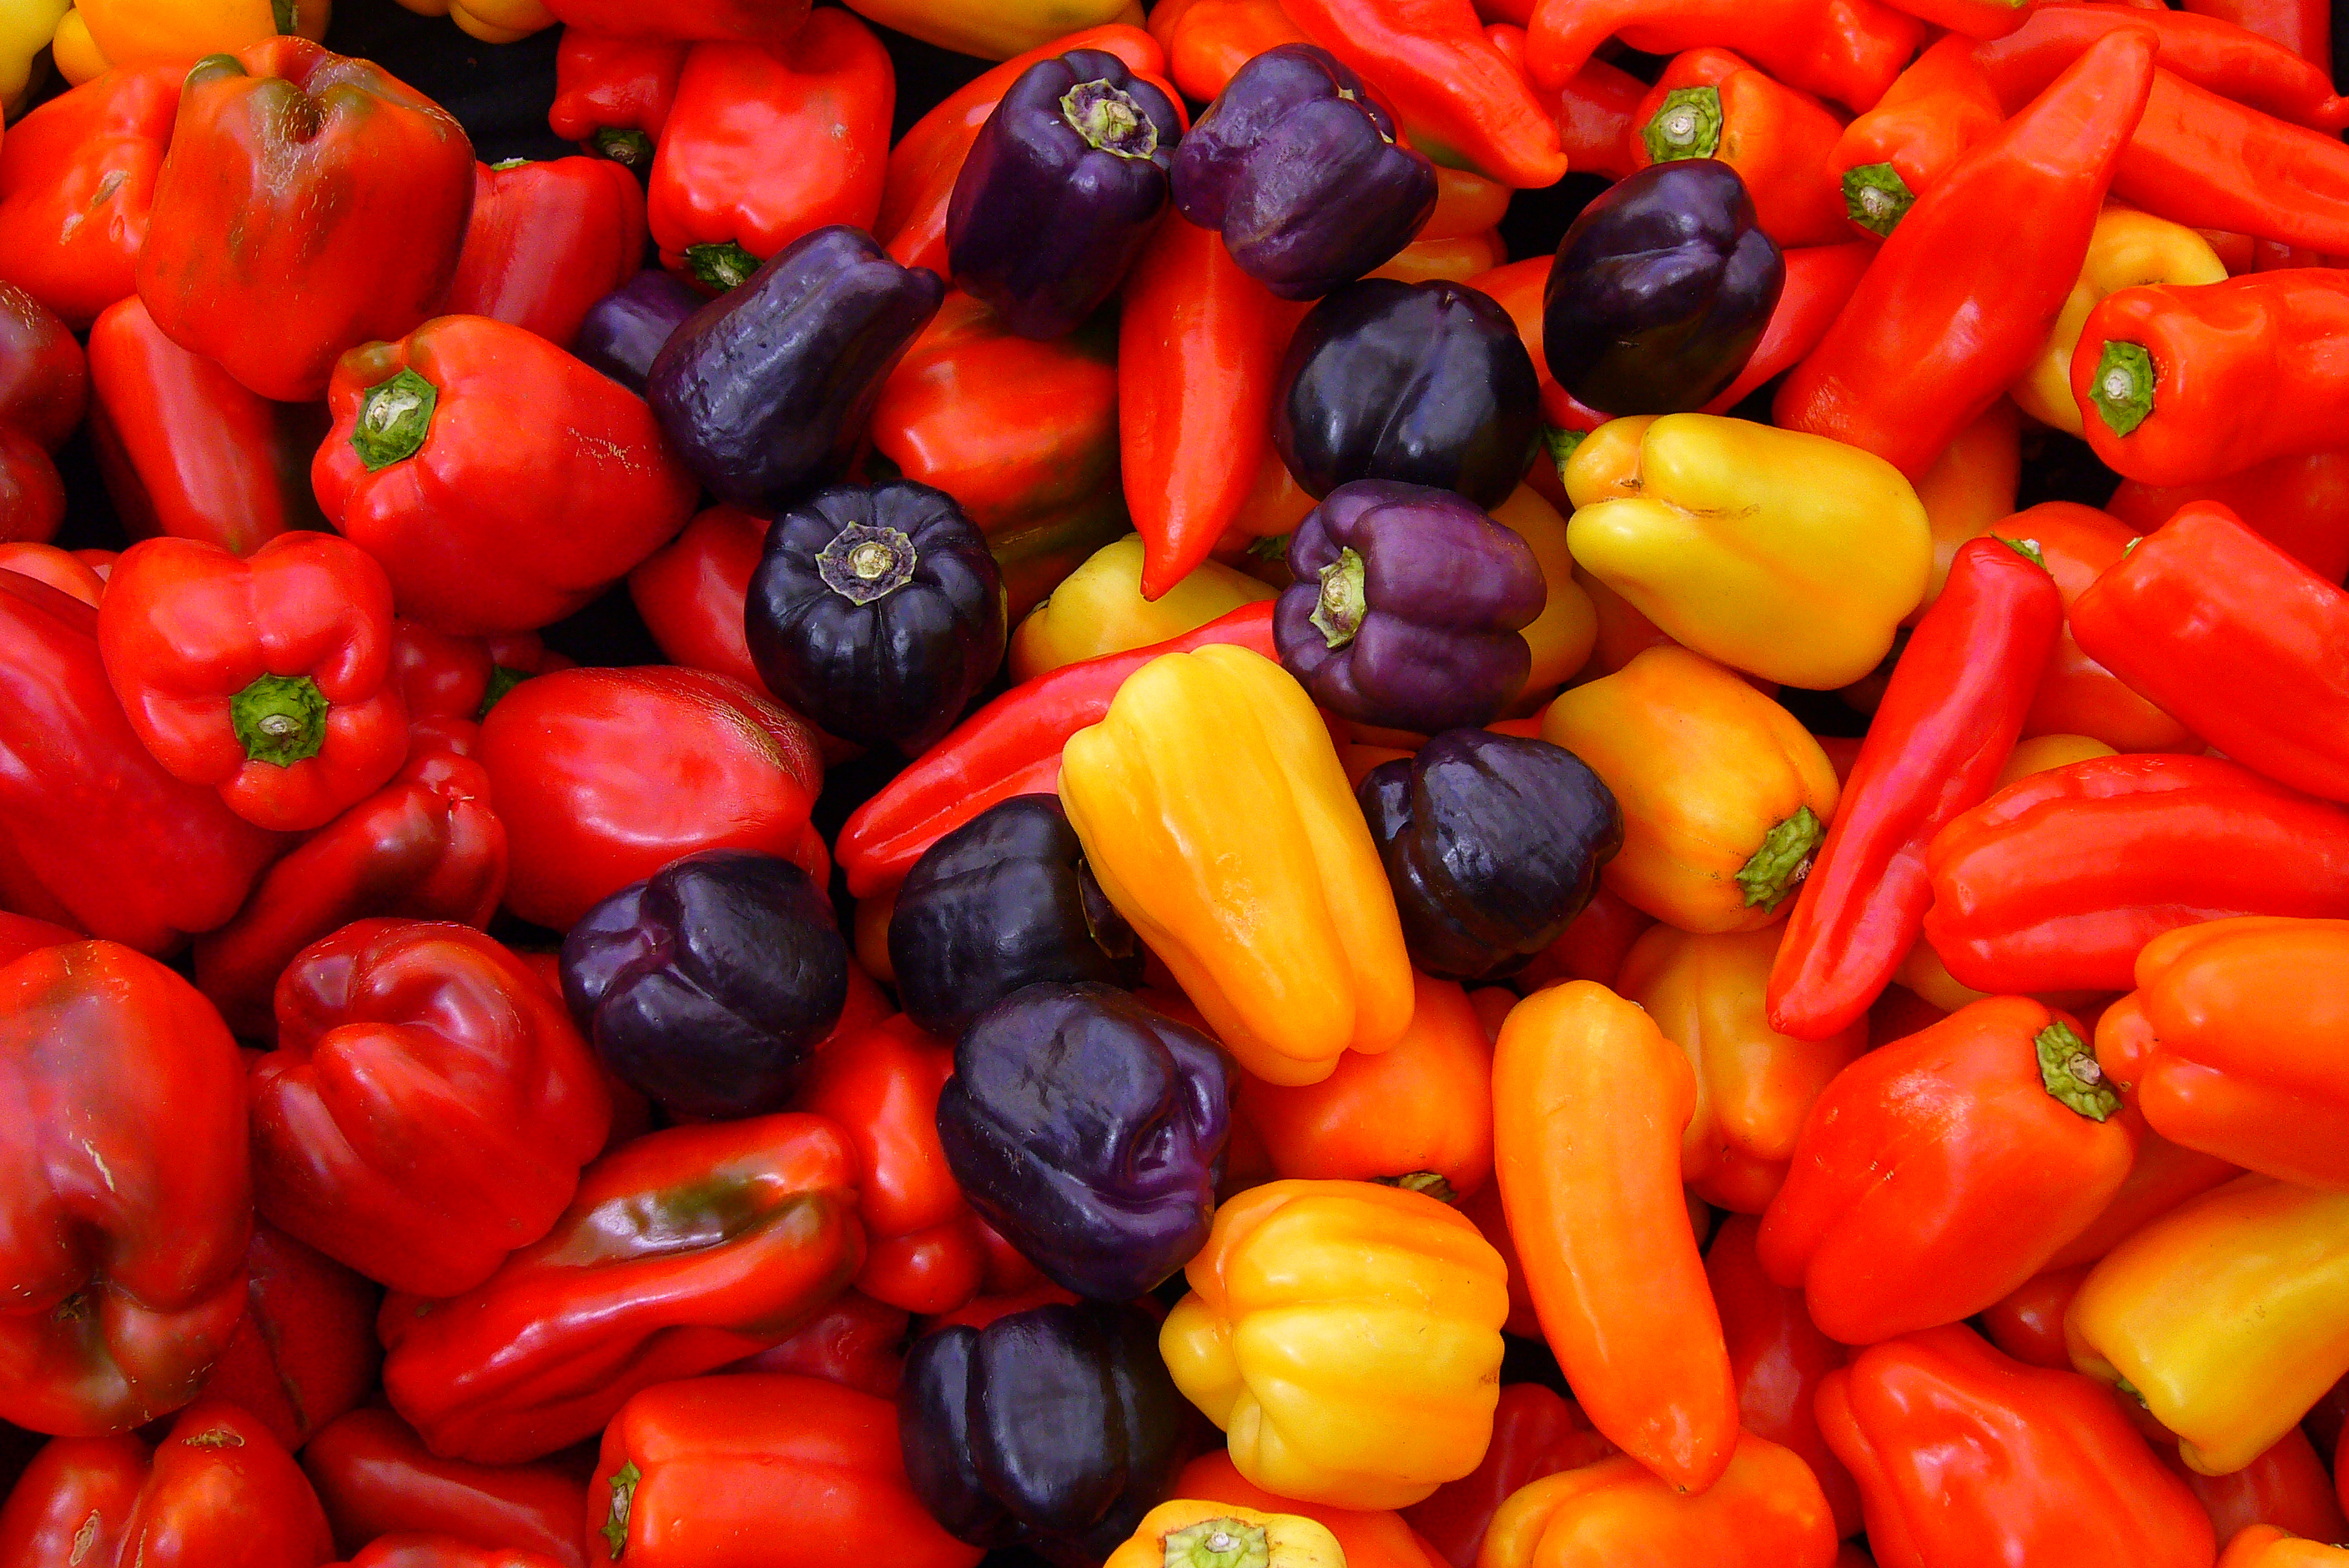 File:Capsicum annuum.JPG - Wikipedia, the free encyclopedia